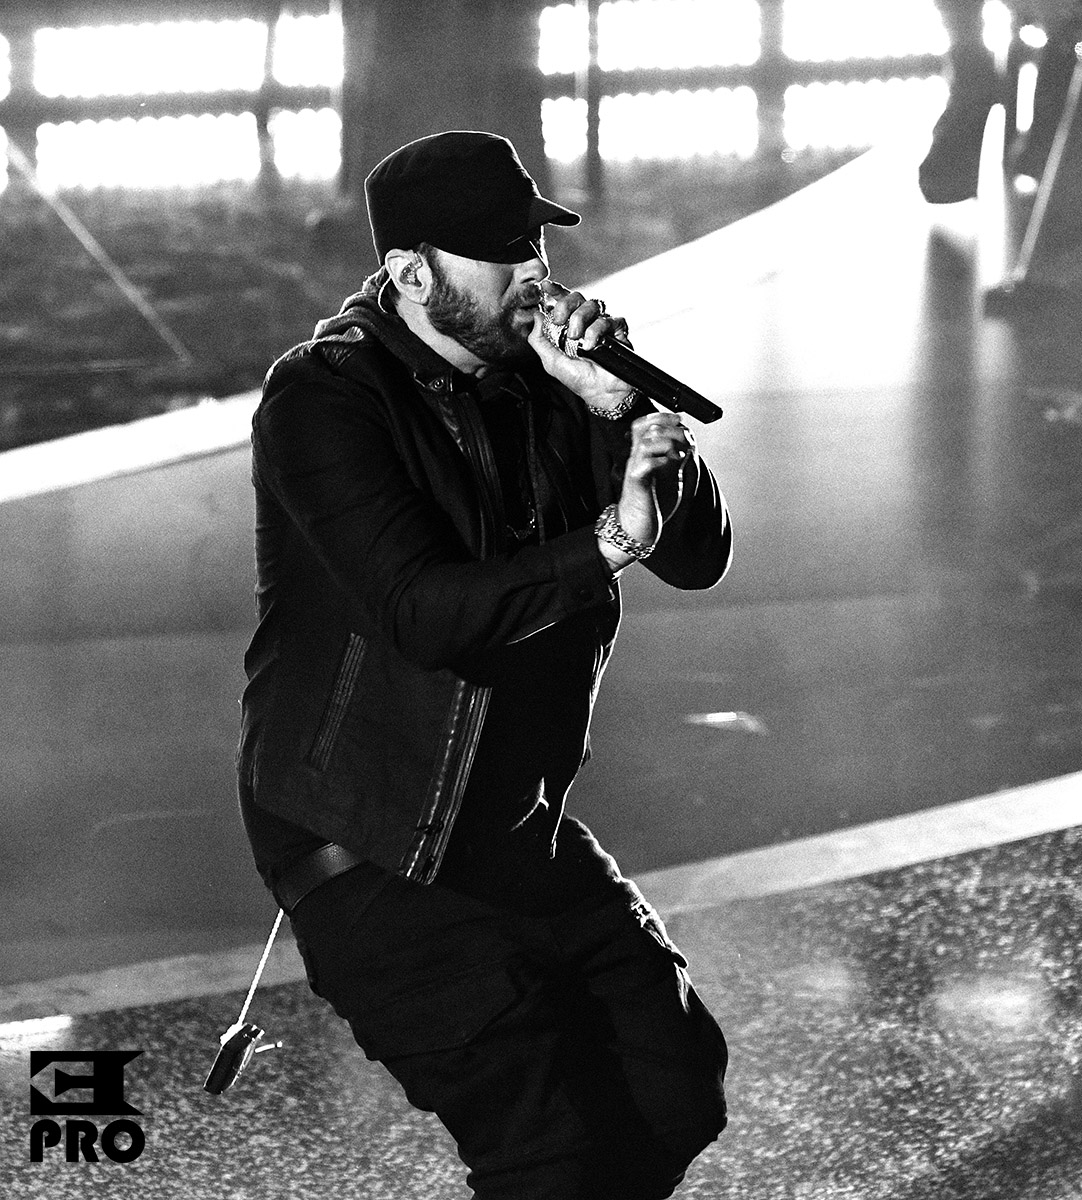 HOLLYWOOD, CALIFORNIA - FEBRUARY 09: (EDITORS NOTE: Image has been converted to black and white.) Eminem performs onstage during the 92nd Annual Academy Awards at Dolby Theatre on February 09, 2020 in Hollywood, California. (Photo by Kevin Winter/Getty Images)